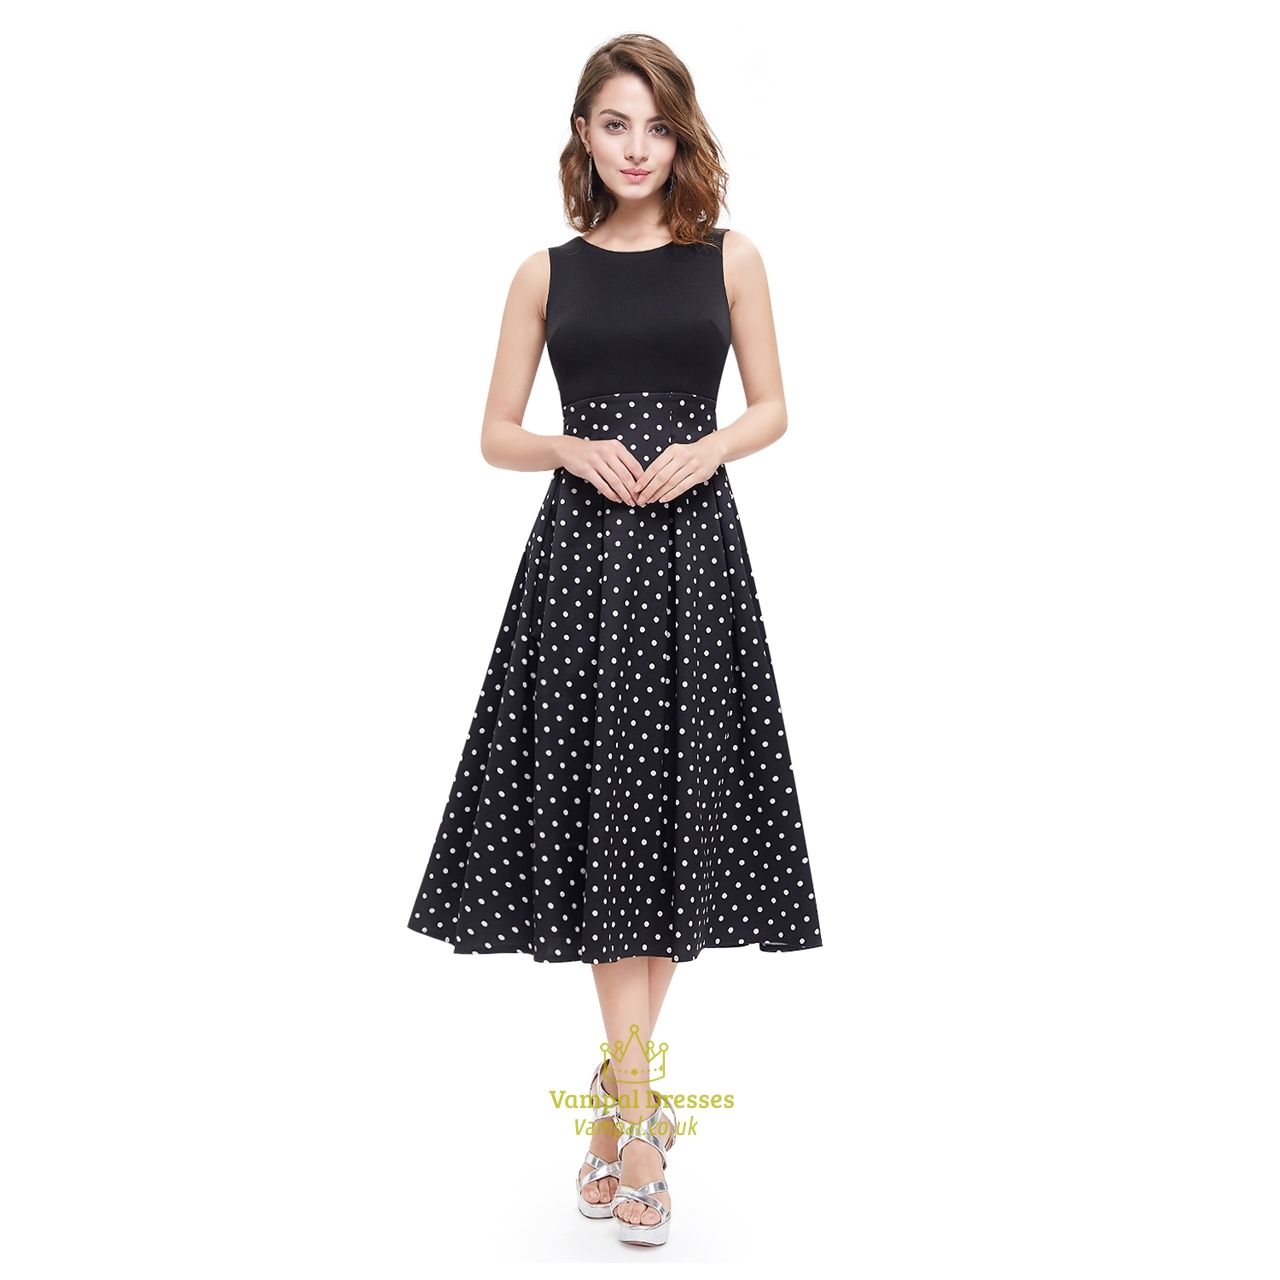 d99b616409 ... watch 52b93 94c52 Vintage Black And White Polka Dot Sleeveless Fit And  Flare Midi Dress ...